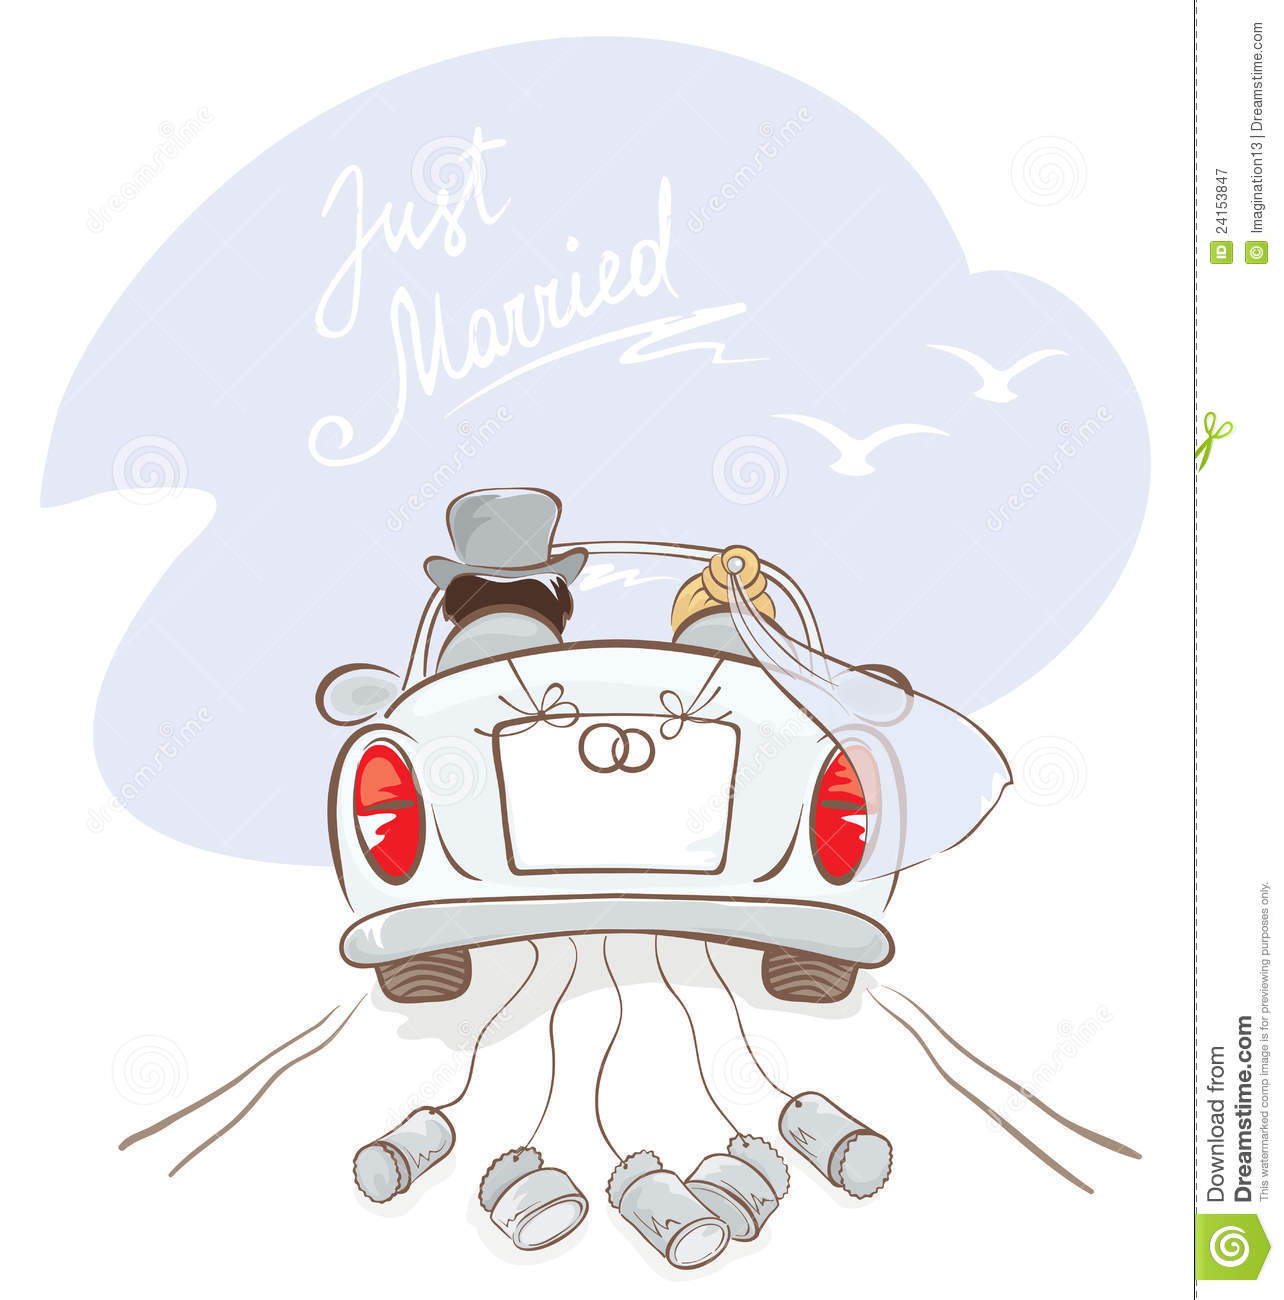 Newlyweds In A Car Royalty Free Stock Photography - Image: 24153847